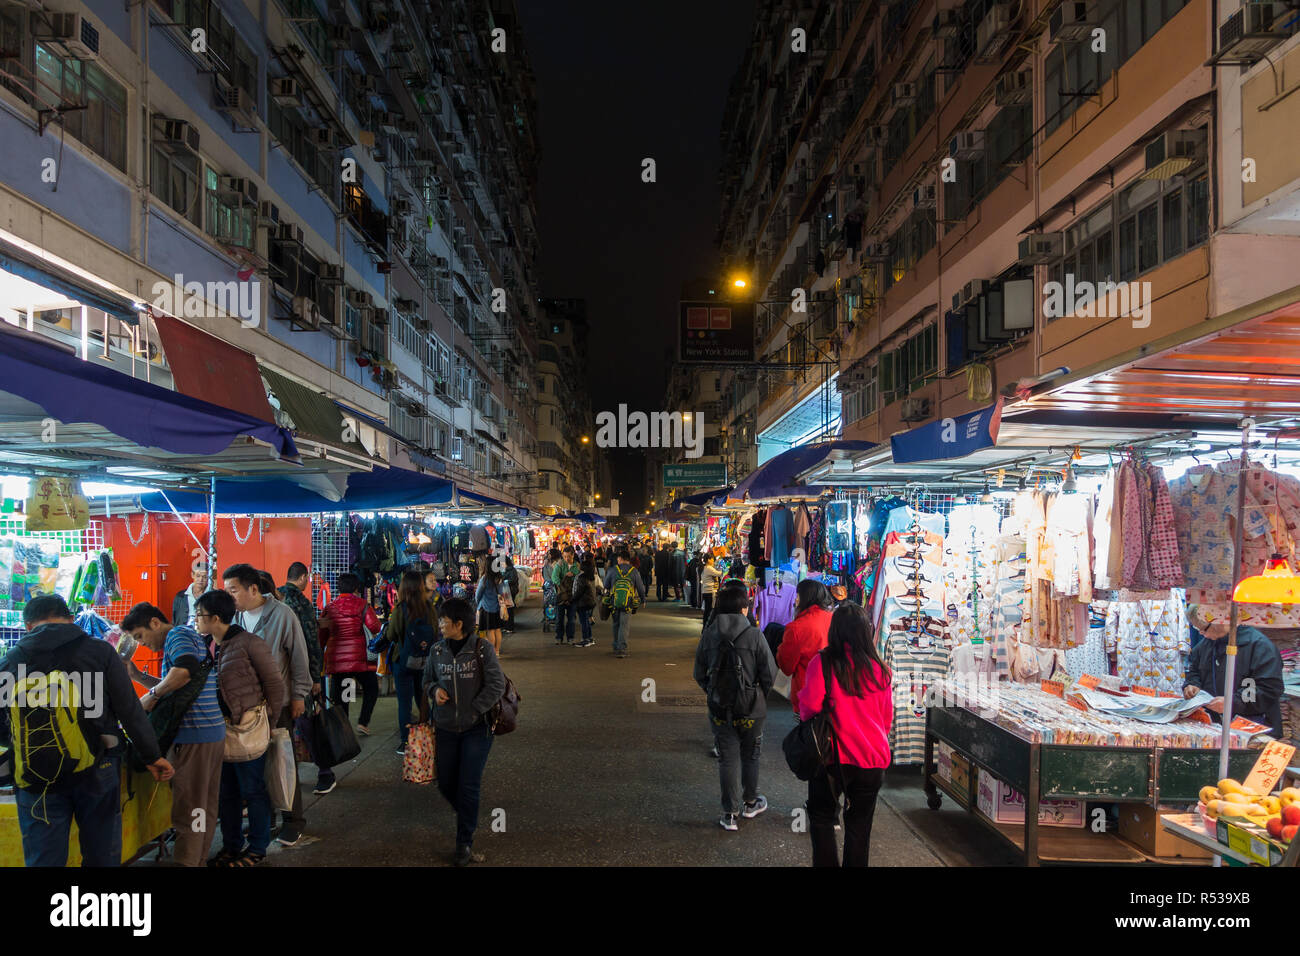 Night view of Fa Yuen street market in Mong Kok, very popular for cheap clothing stalls and stores. Hong Kong, Kowloon, January 2018 - Stock Image